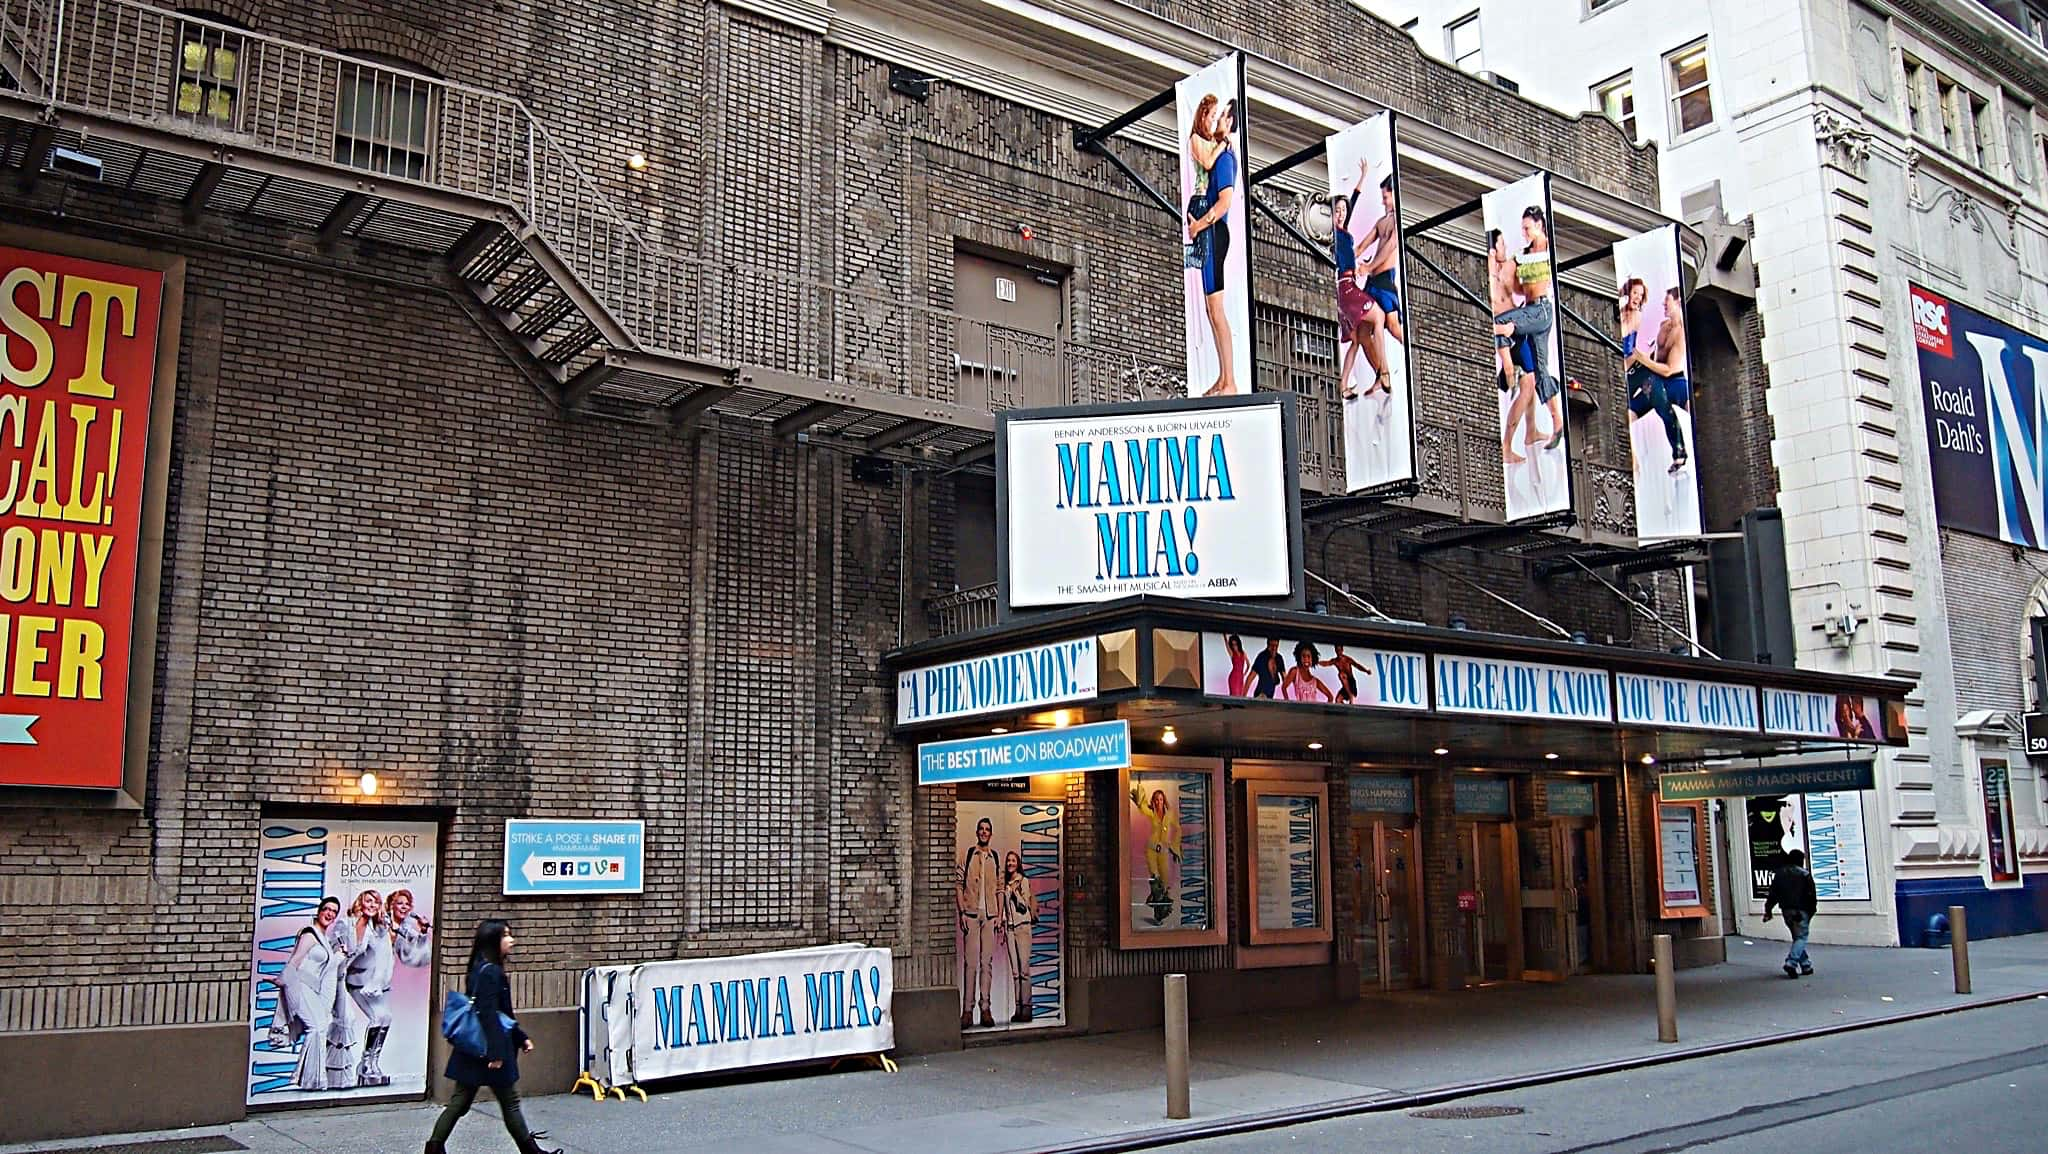 David Nyberg's percussion setup for the Broadway production of Mamma Mia at the Broadhurst Theatre.